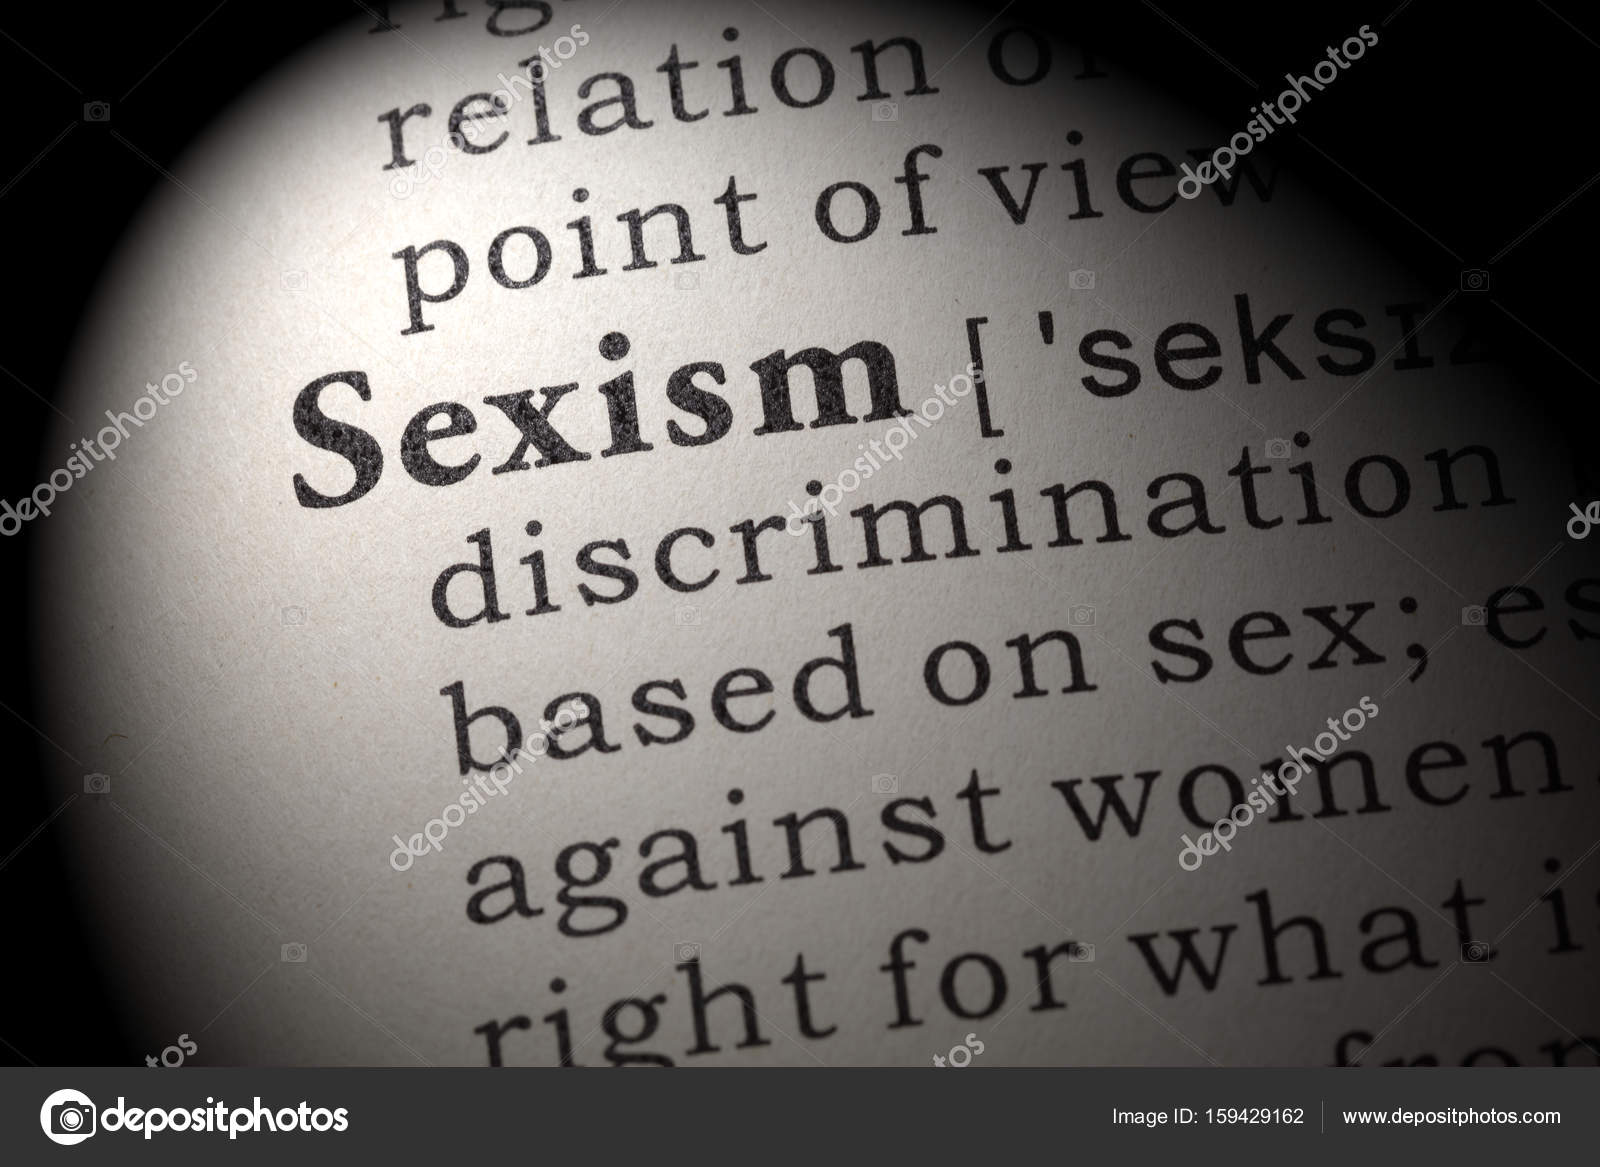 the definition of sexism